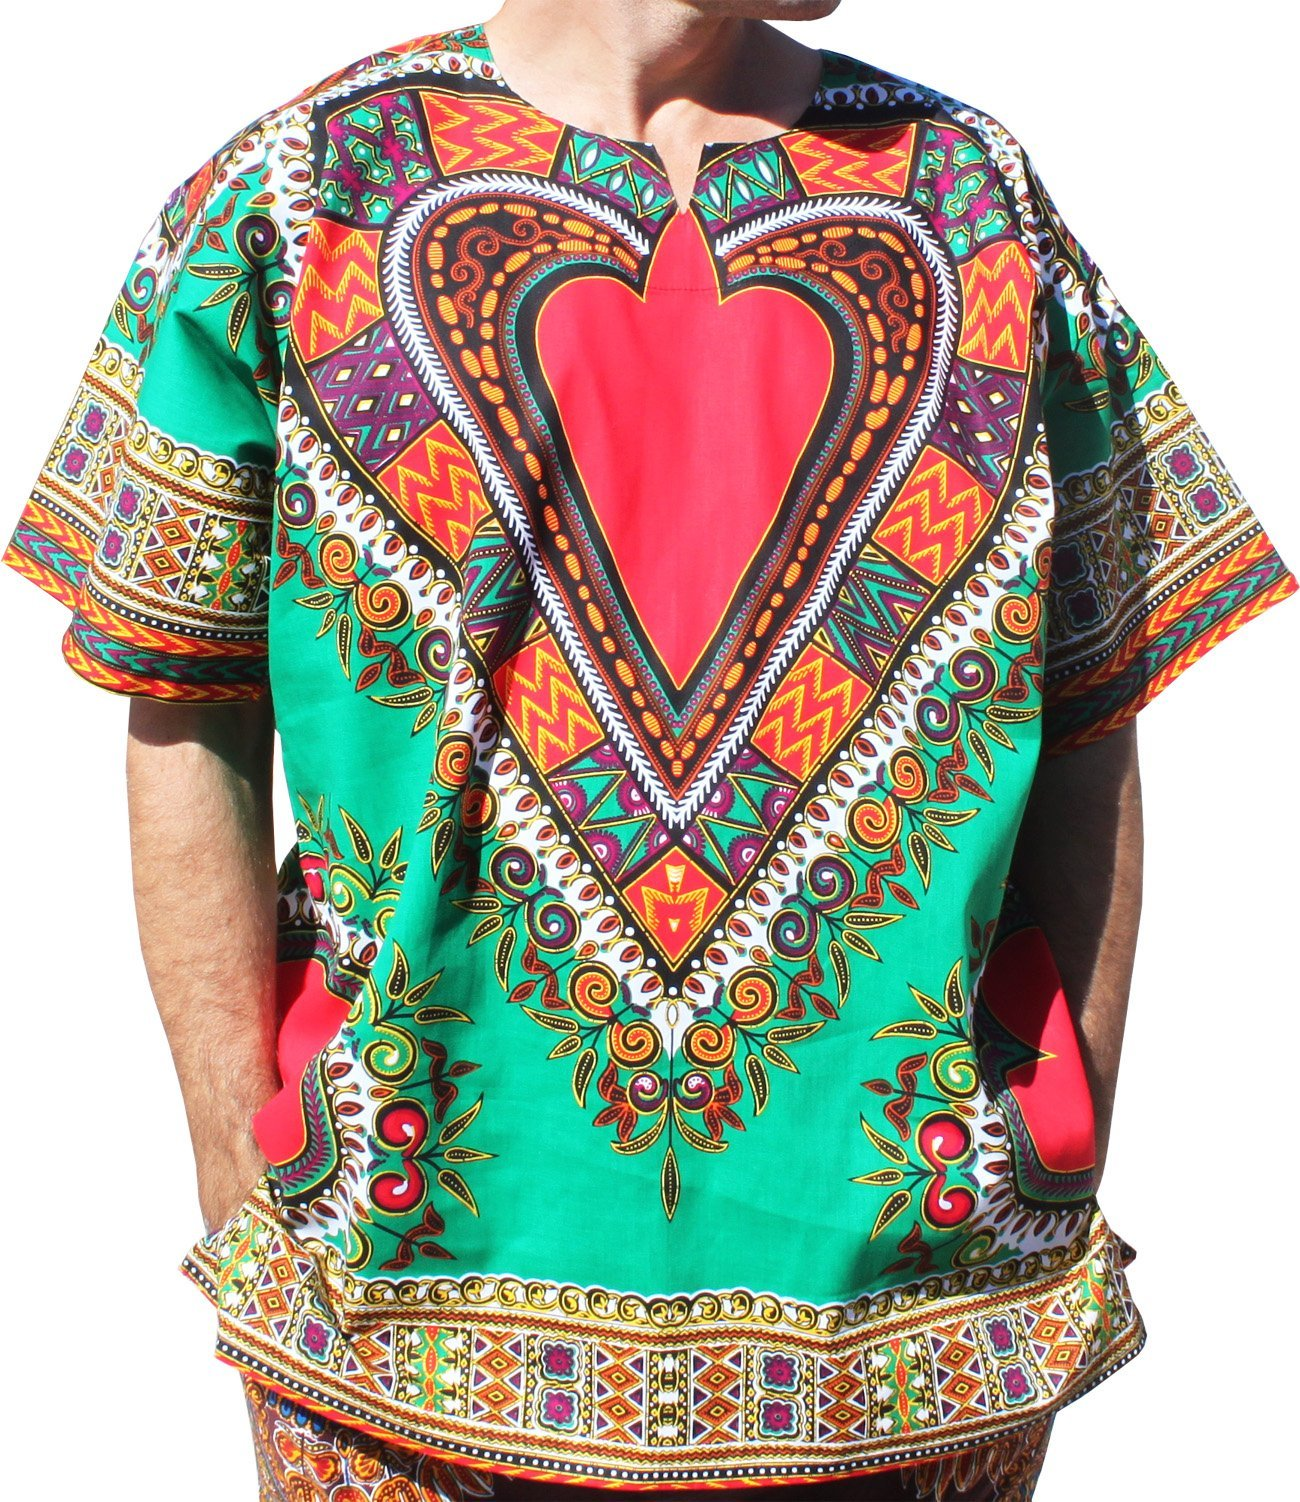 RaanPahMuang Bright Heart Cotton Africa Dashiki Plus Sized Shirt Plain Front, XXXXXXX-Large, Green by RaanPahMuang